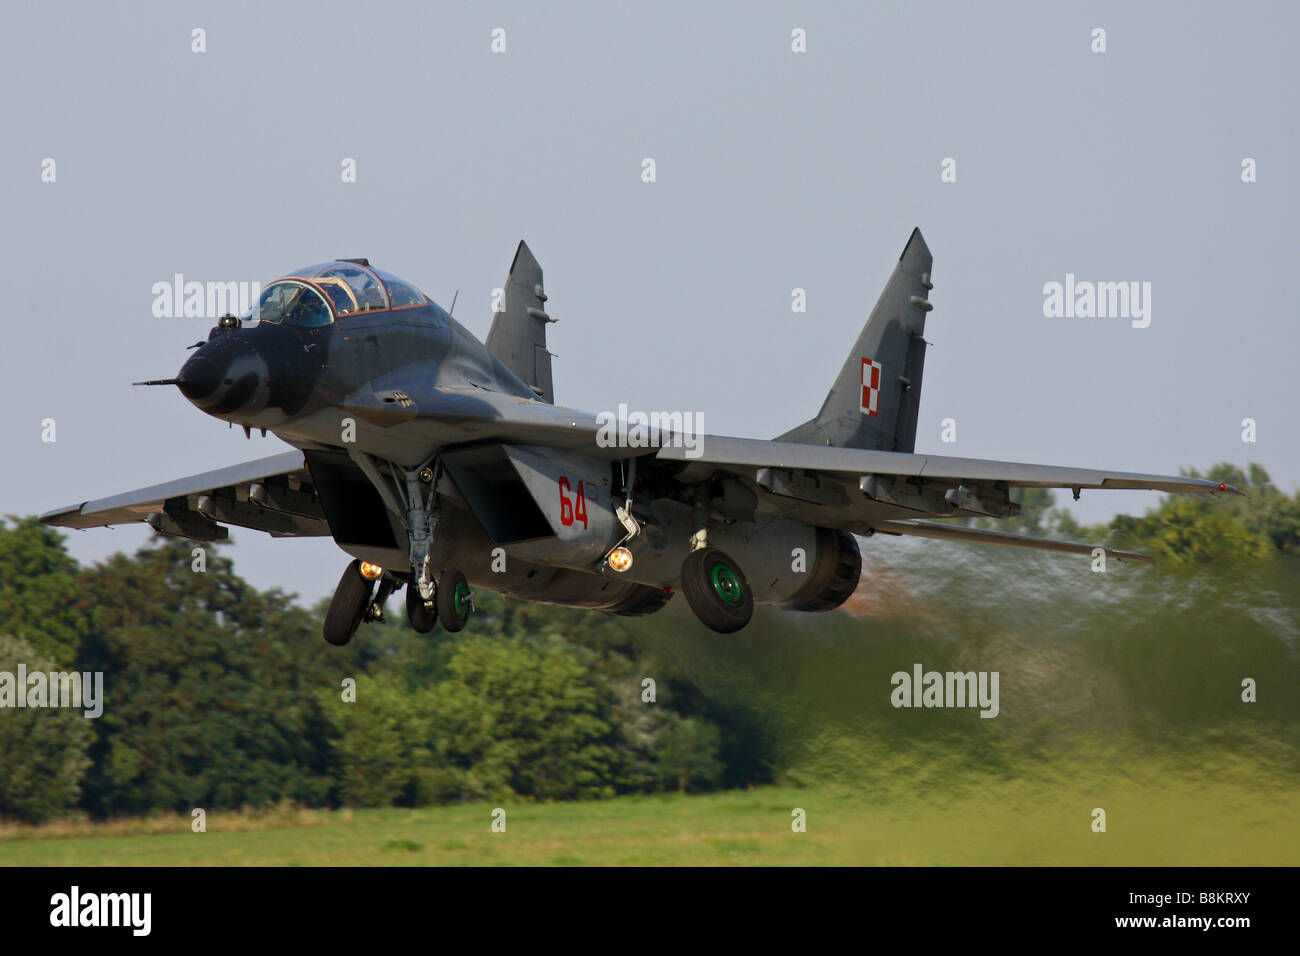 MiG 29 military jet fighter from Polish Air Force taking off - Stock Image